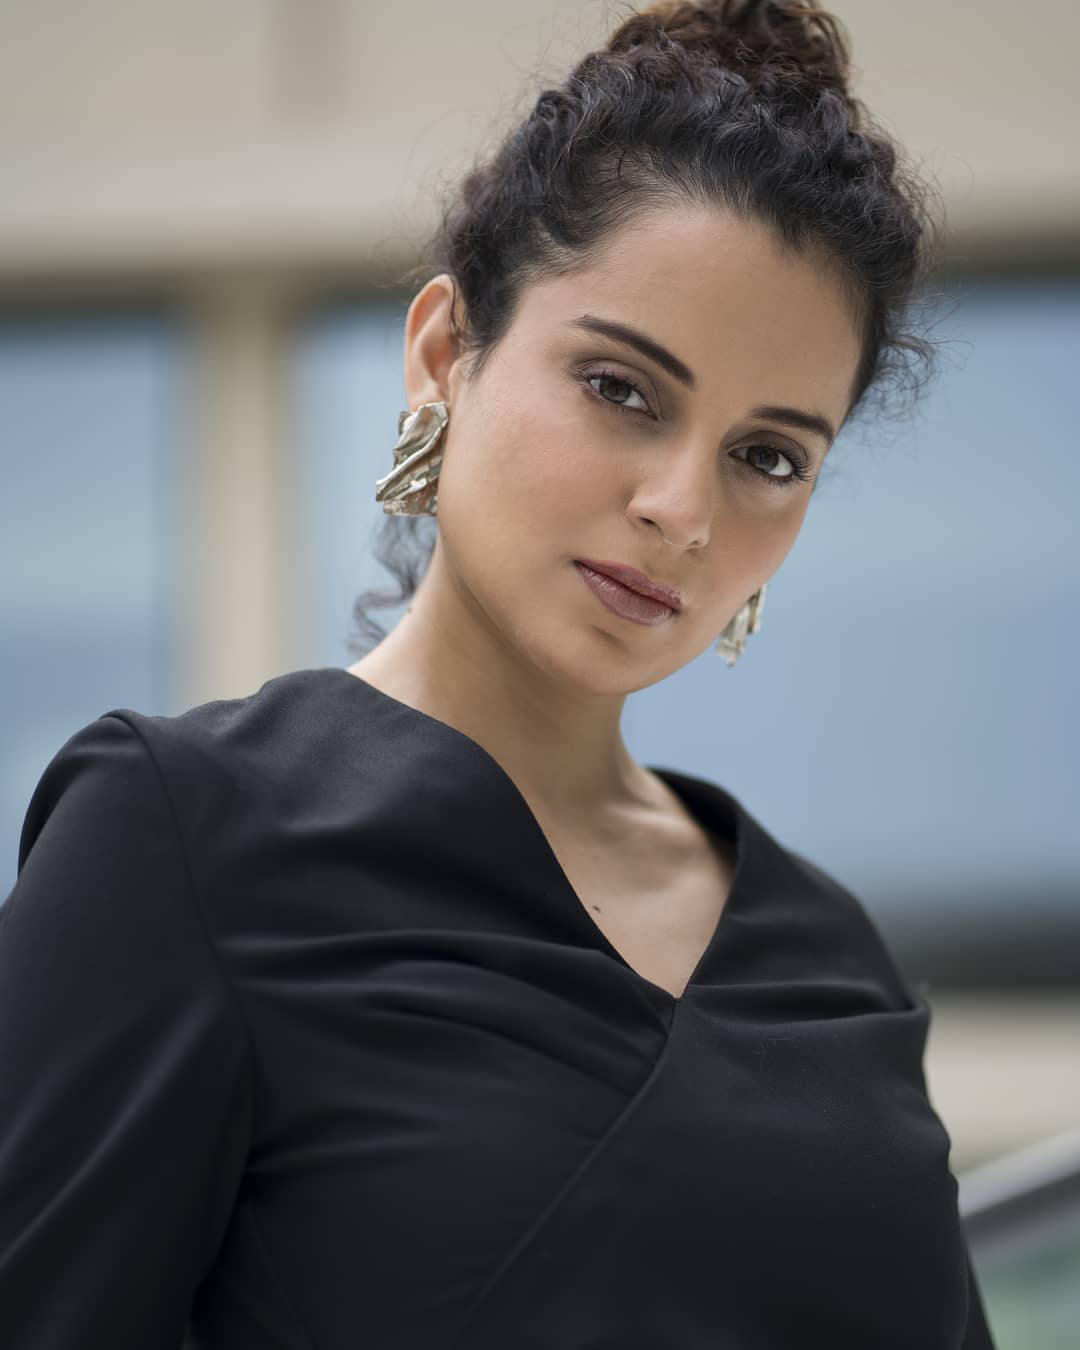 Kangana Ranaut Biography Age Family Latest Hot Photos 2020, Photos, Videos, Full Movie Watch Online Free Down Load Leaked By Tamilrockers, Down Load Torrent Telegram File Link